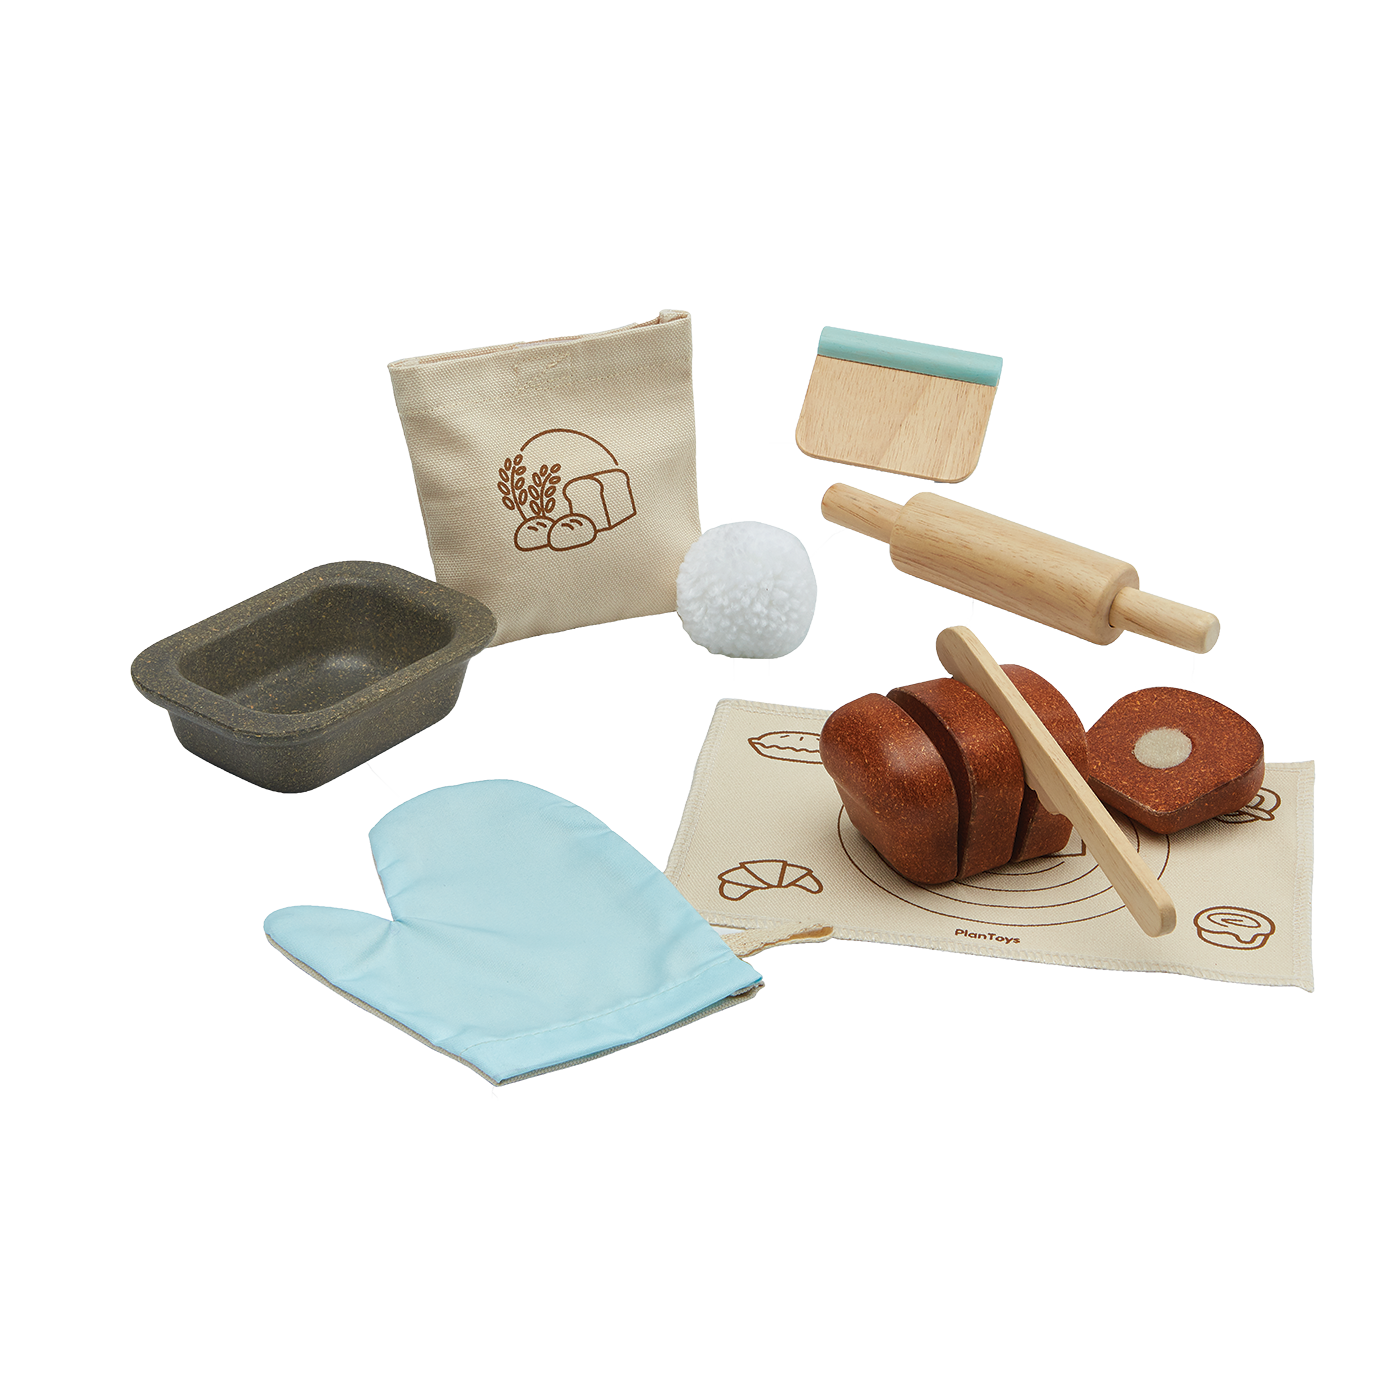 3625_PlanToys_BREAD_LOAF_SET_Pretend_Play_2yrs_Emotion_Language_and_Communications_Imagination_Social_Coordination_Wooden_toys_Education_toys_Safety_Toys_Non-toxic_0.png